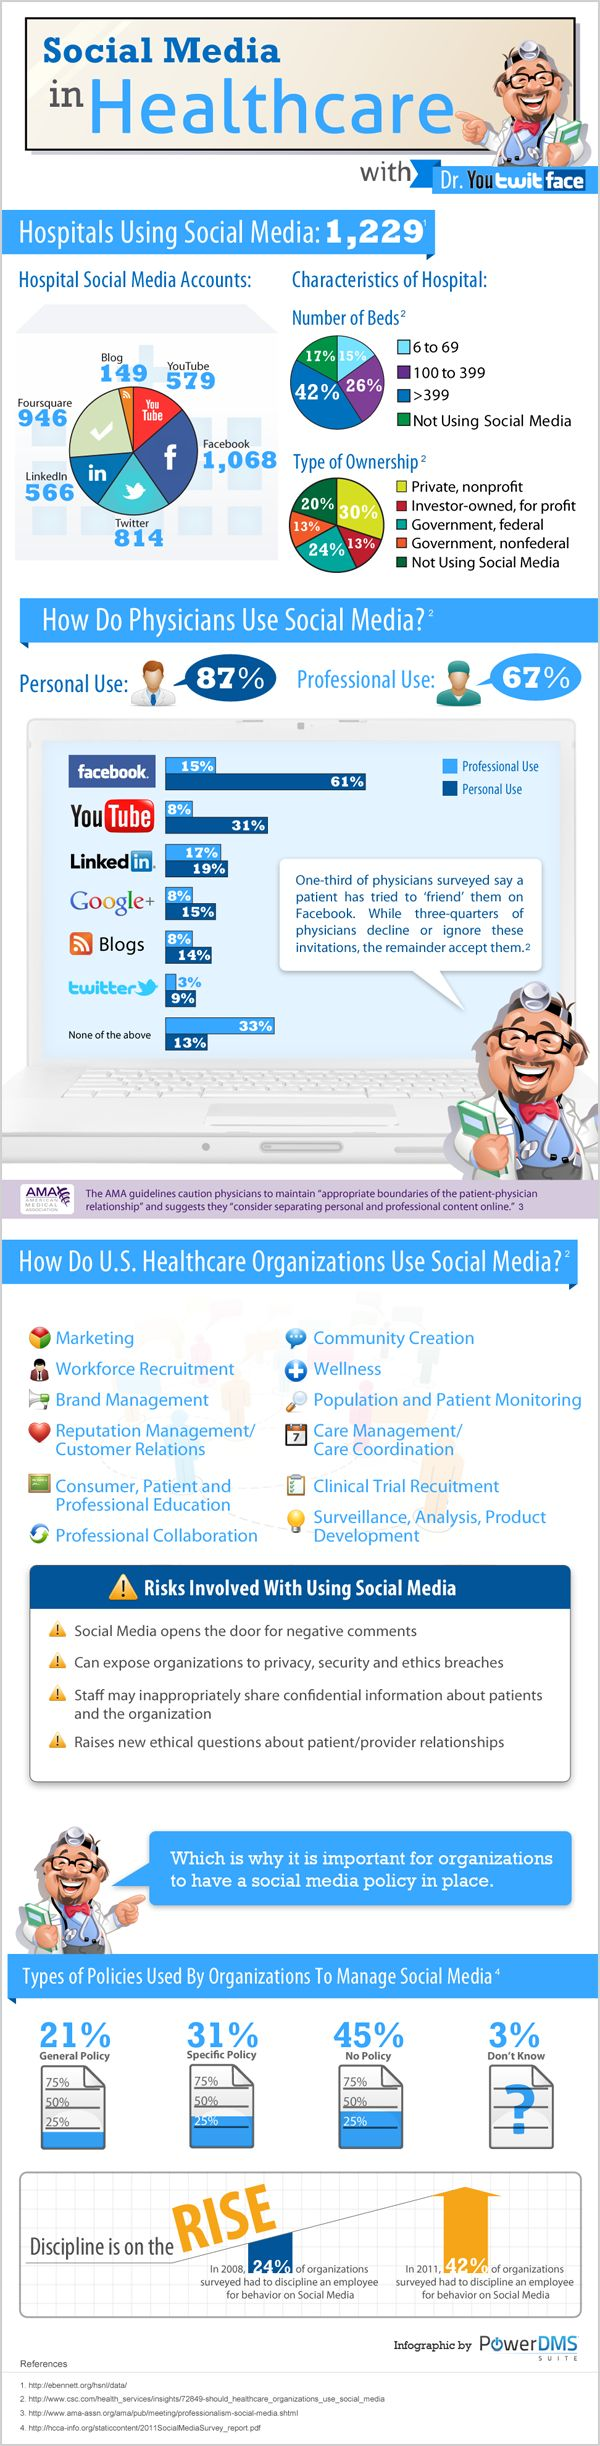 How Is Social Media Used In Health Care